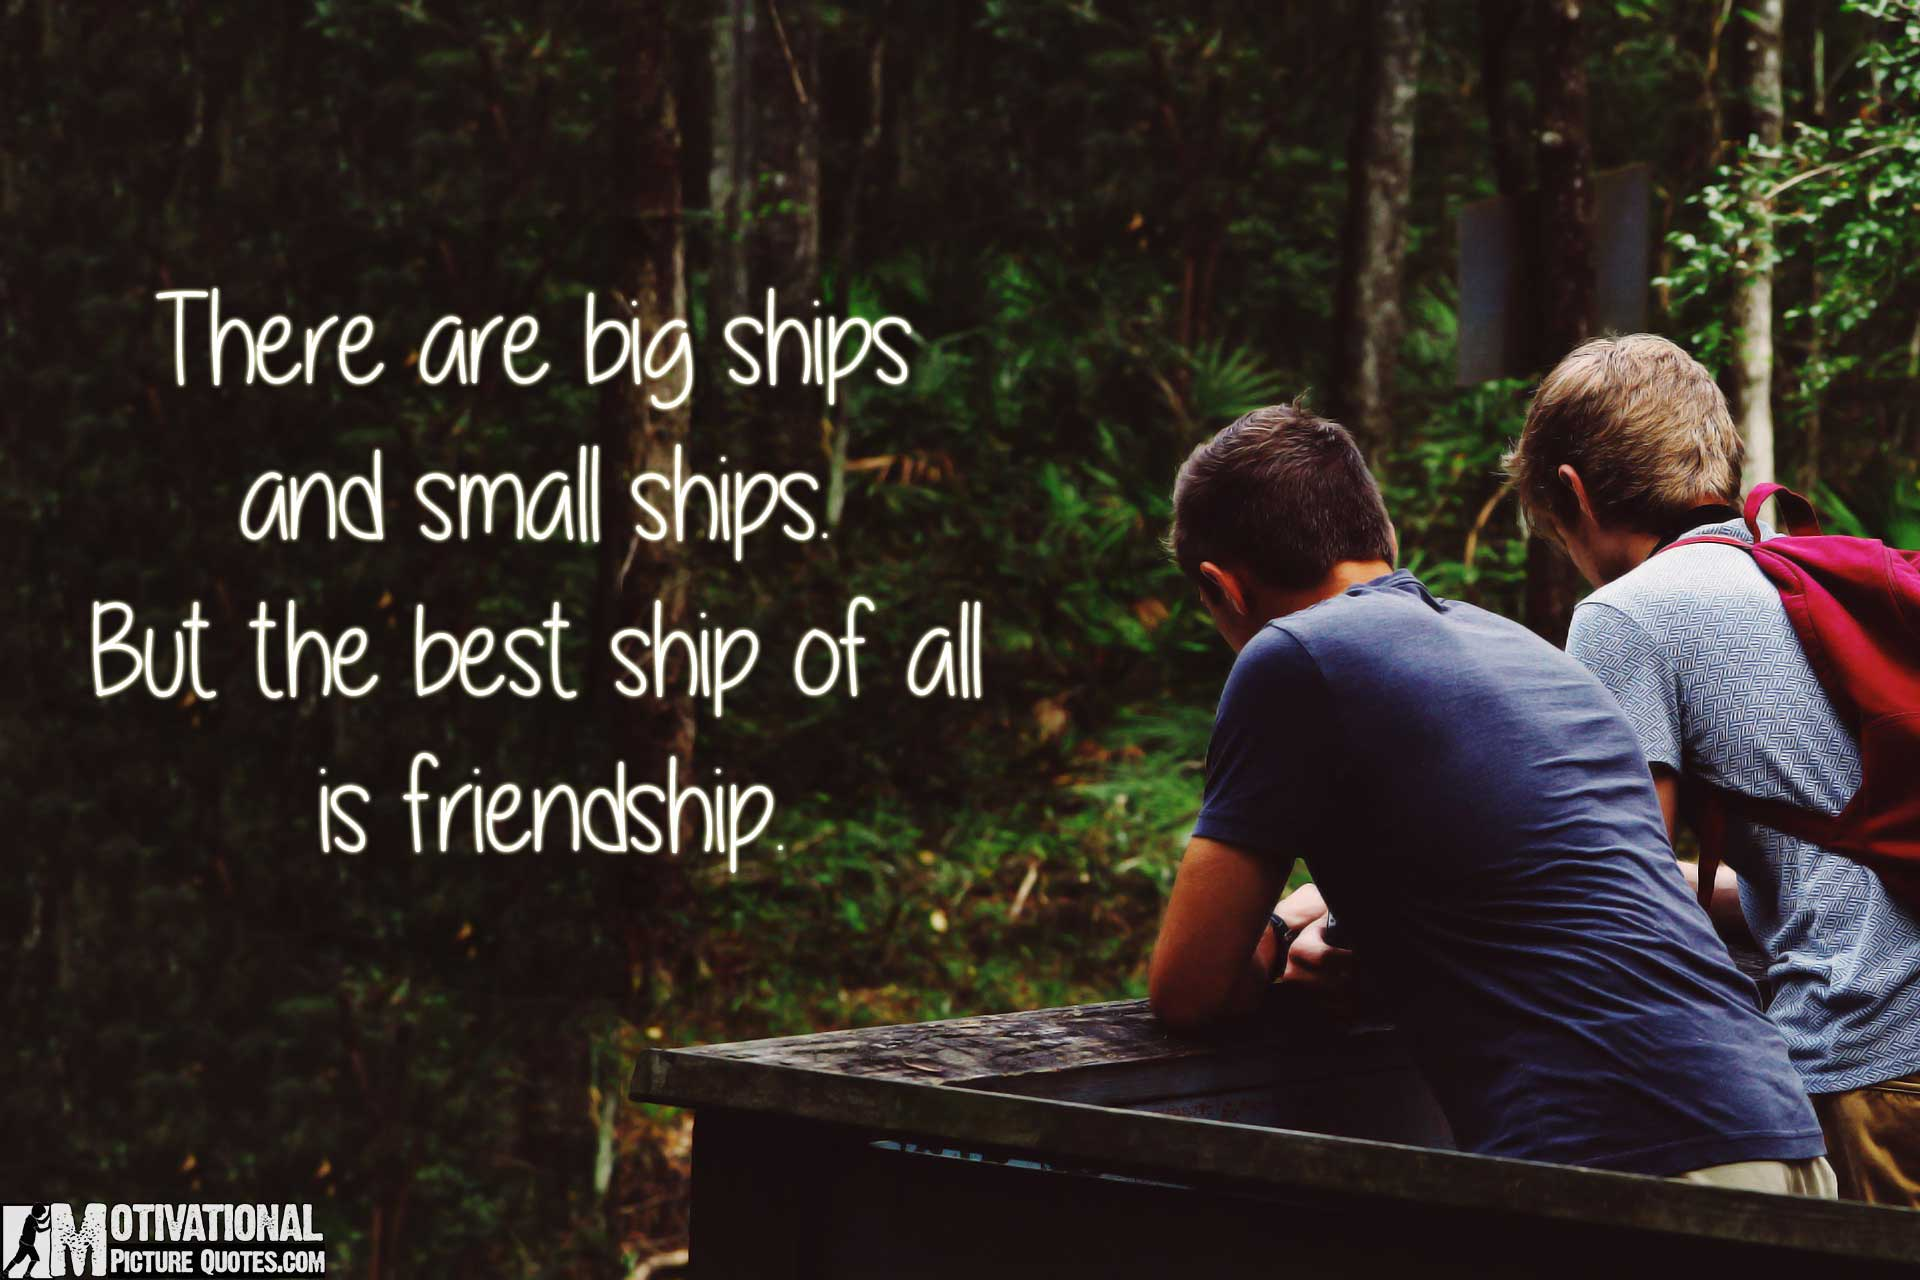 friendship images quotes - HD1920×1280